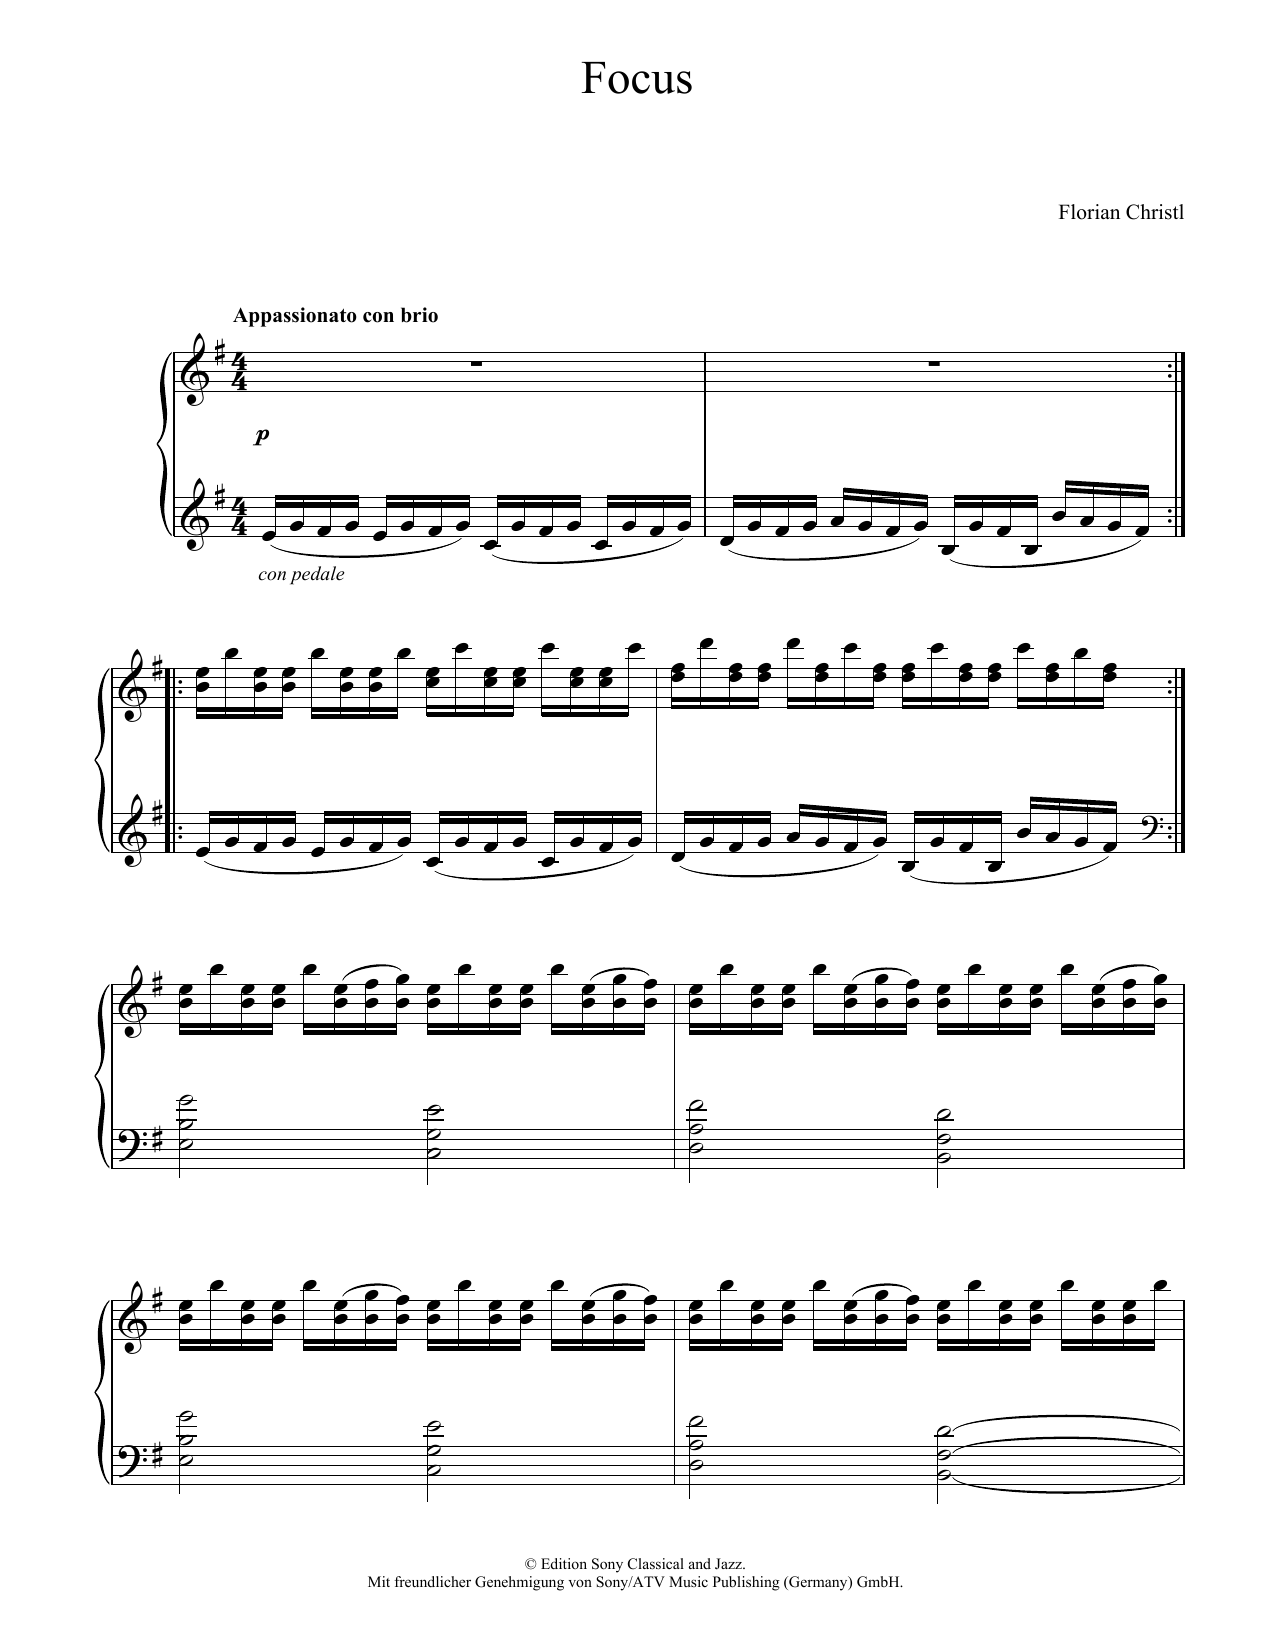 Florian Christl Focus sheet music notes and chords